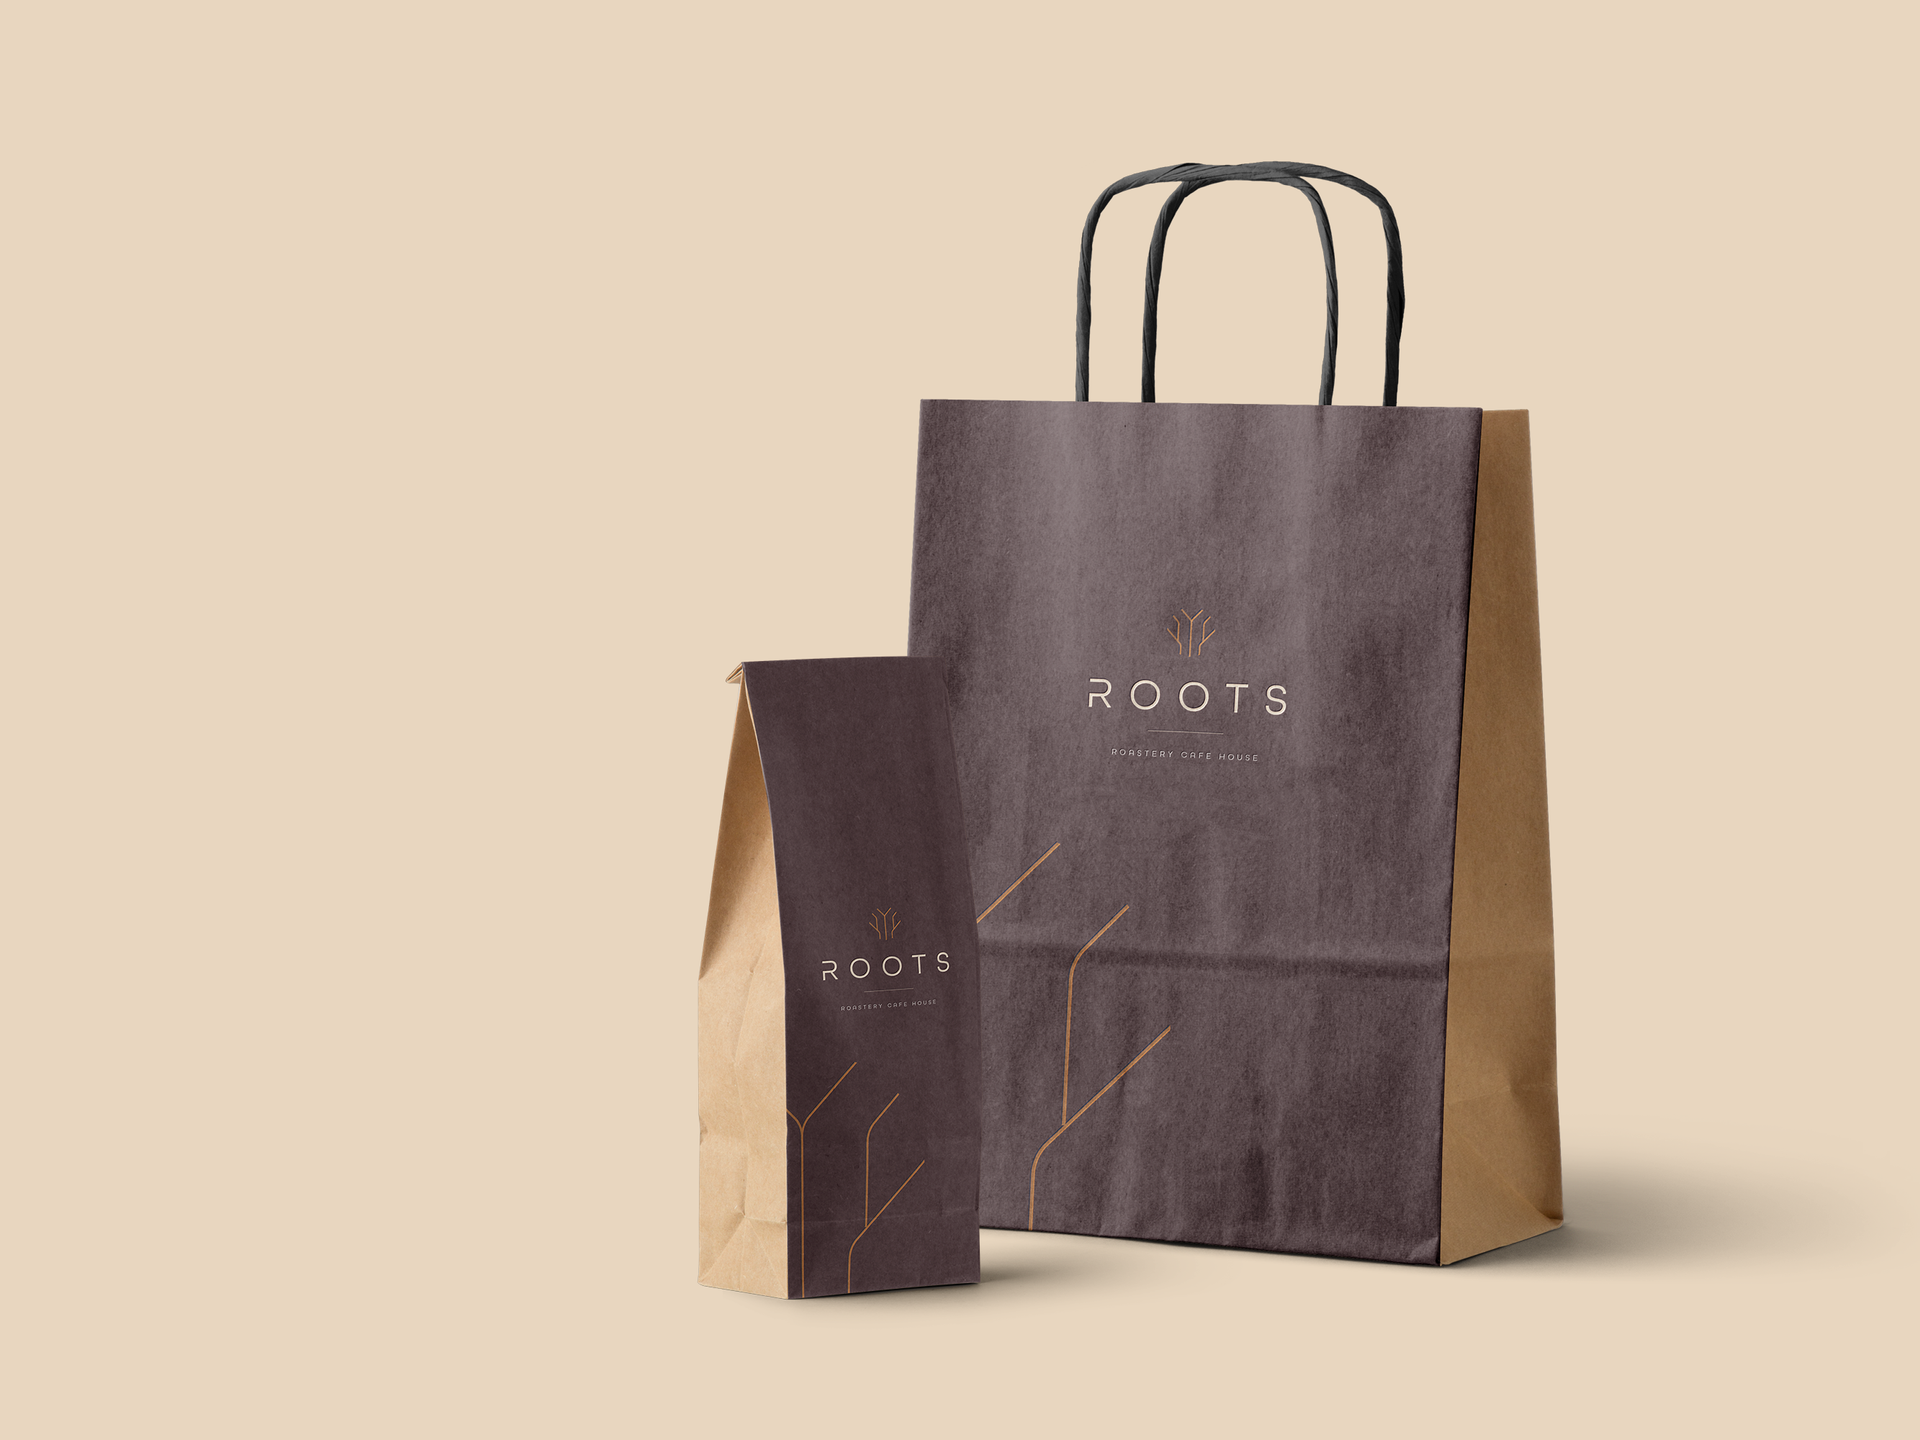 Roots Bags